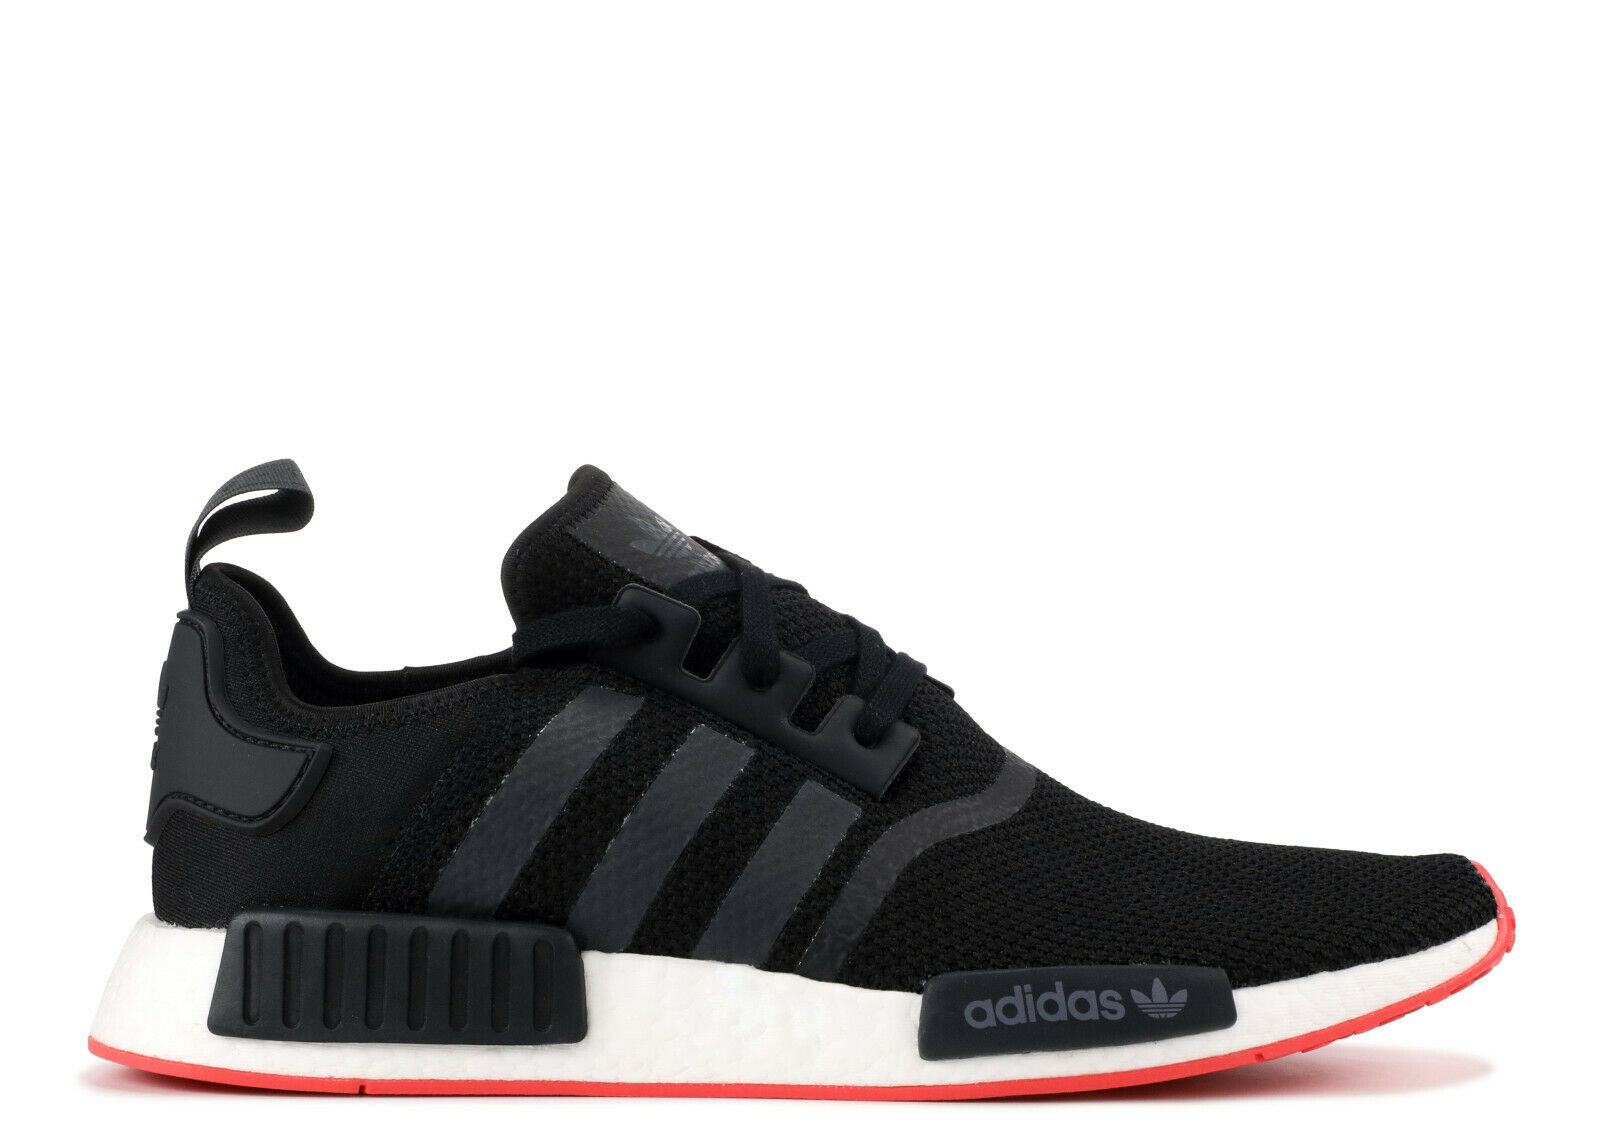 Adidas NMD_R1 BLACK CQ2413 BOOST SNEAKERS MEN SHOES RUNNING 100%AUTHENTIC US DS